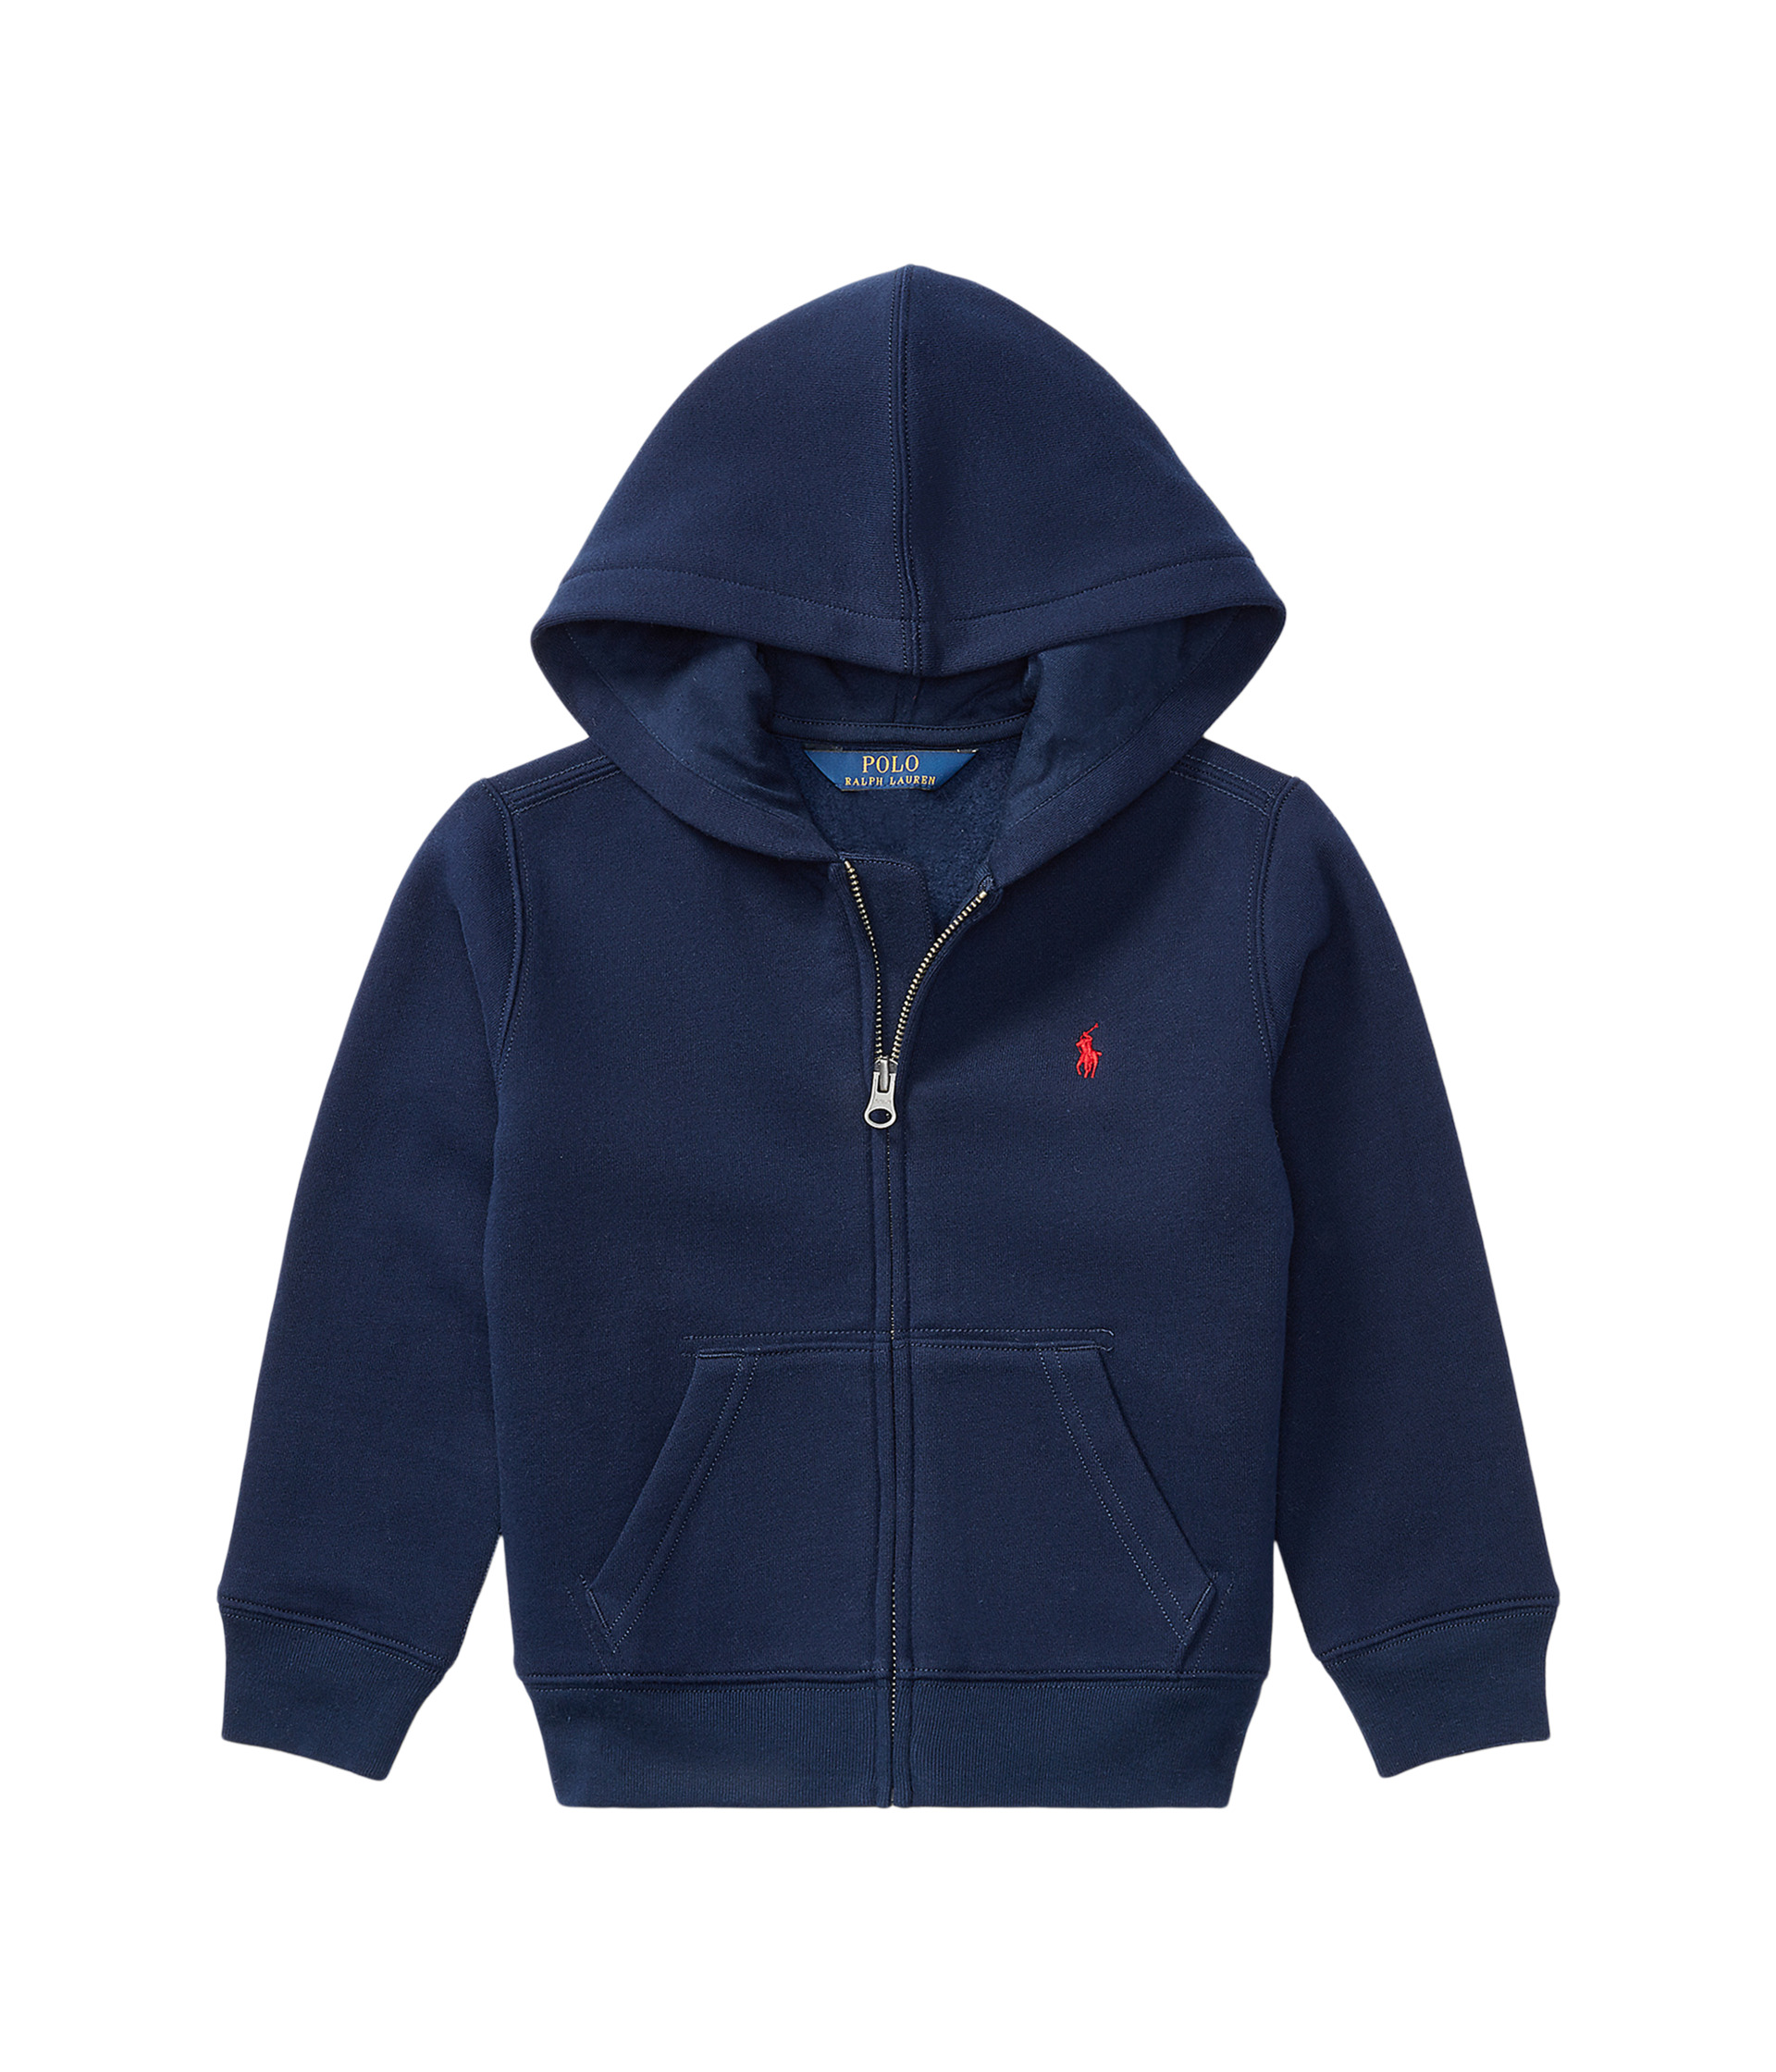 polo ralph lauren kids collection fleece full zip hoodie little kids at. Black Bedroom Furniture Sets. Home Design Ideas